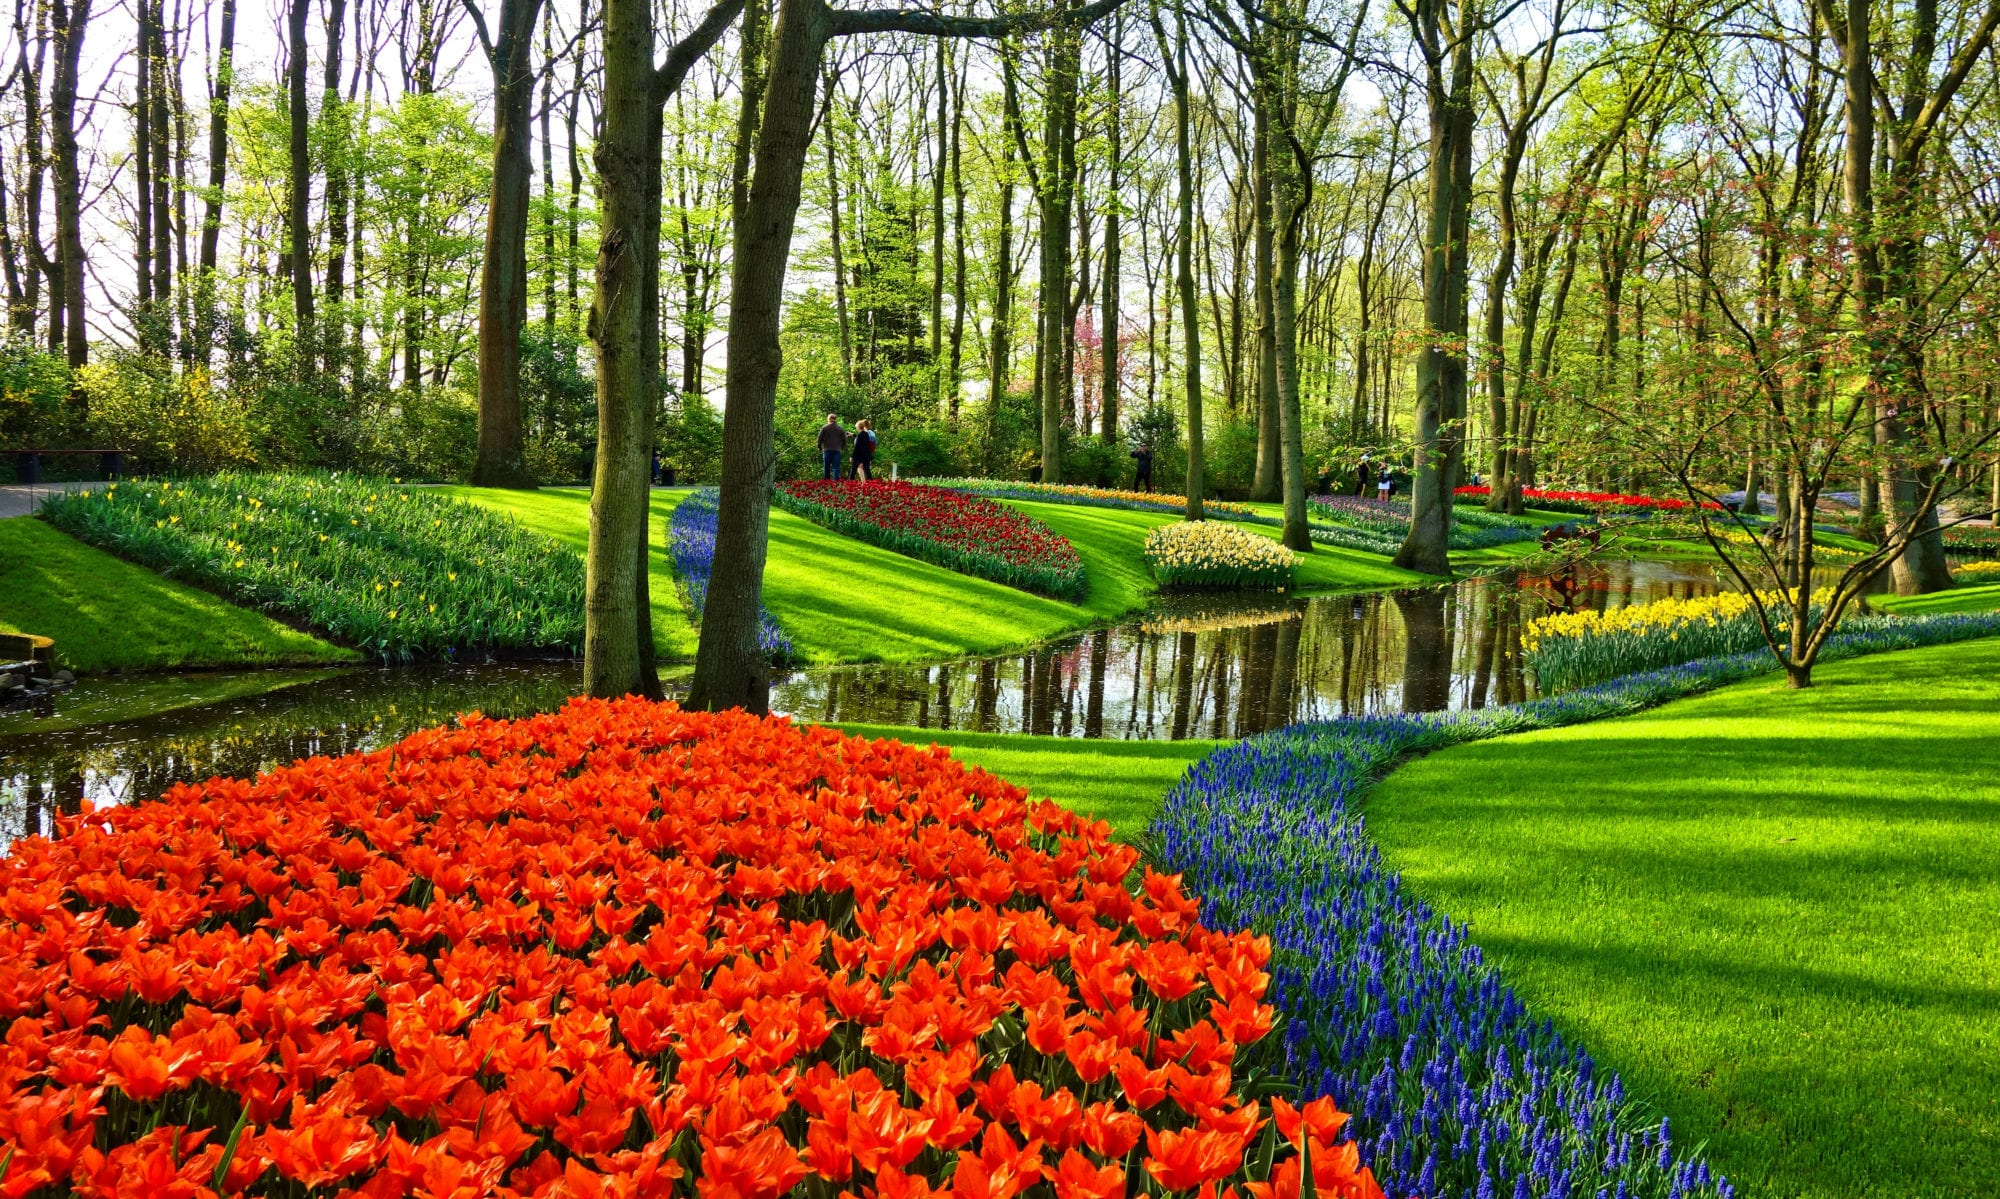 garden with colourful flowers